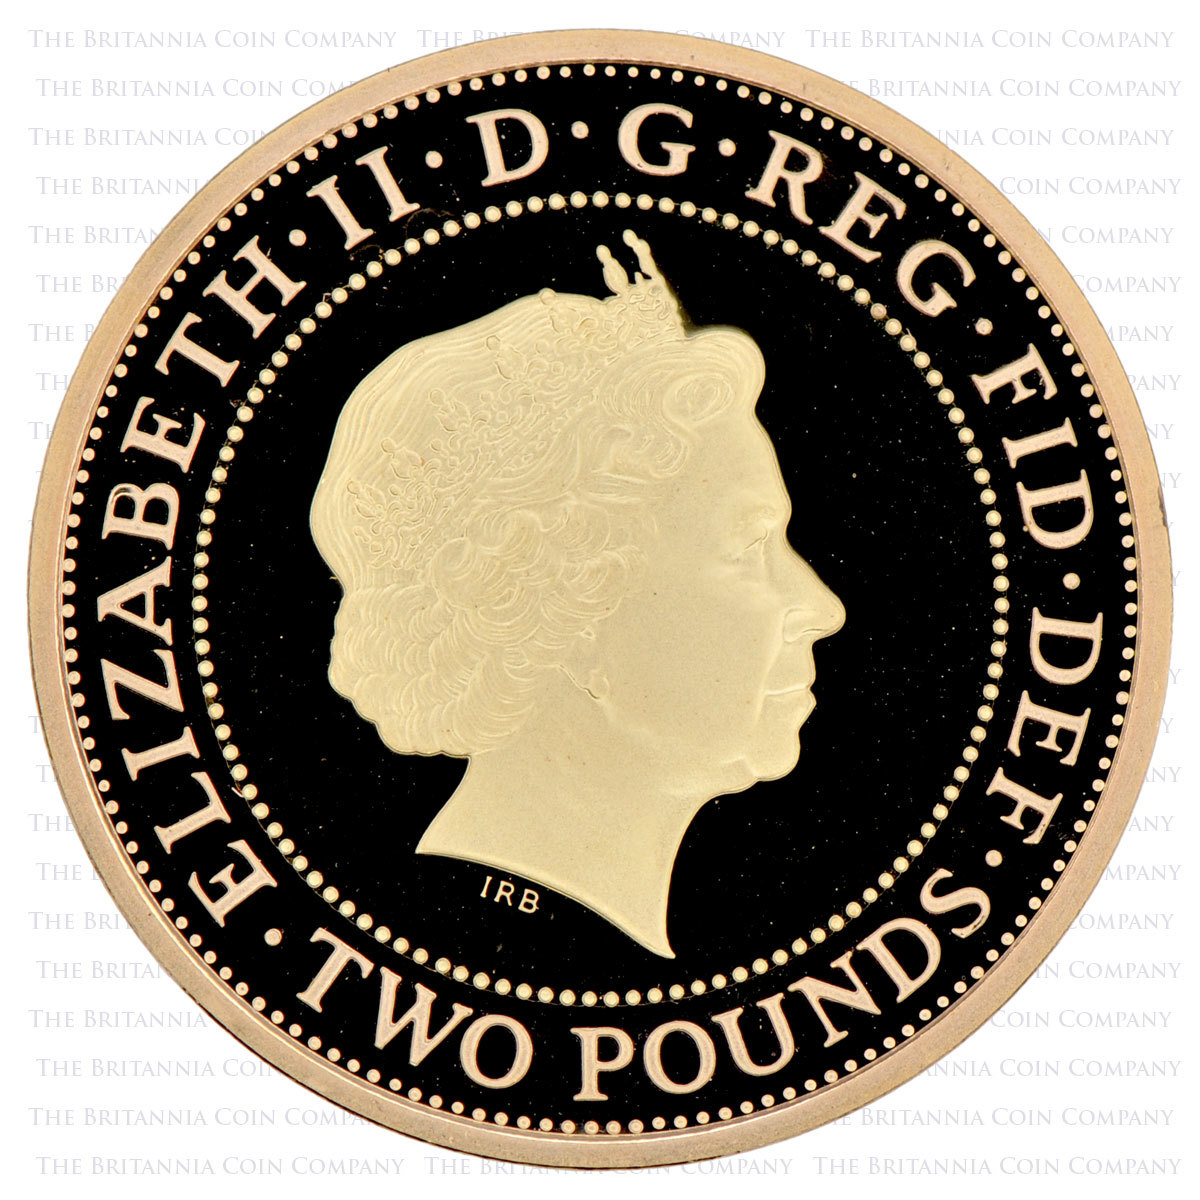 2007-PROOF-£2-ABOLITION-COIN-OBV